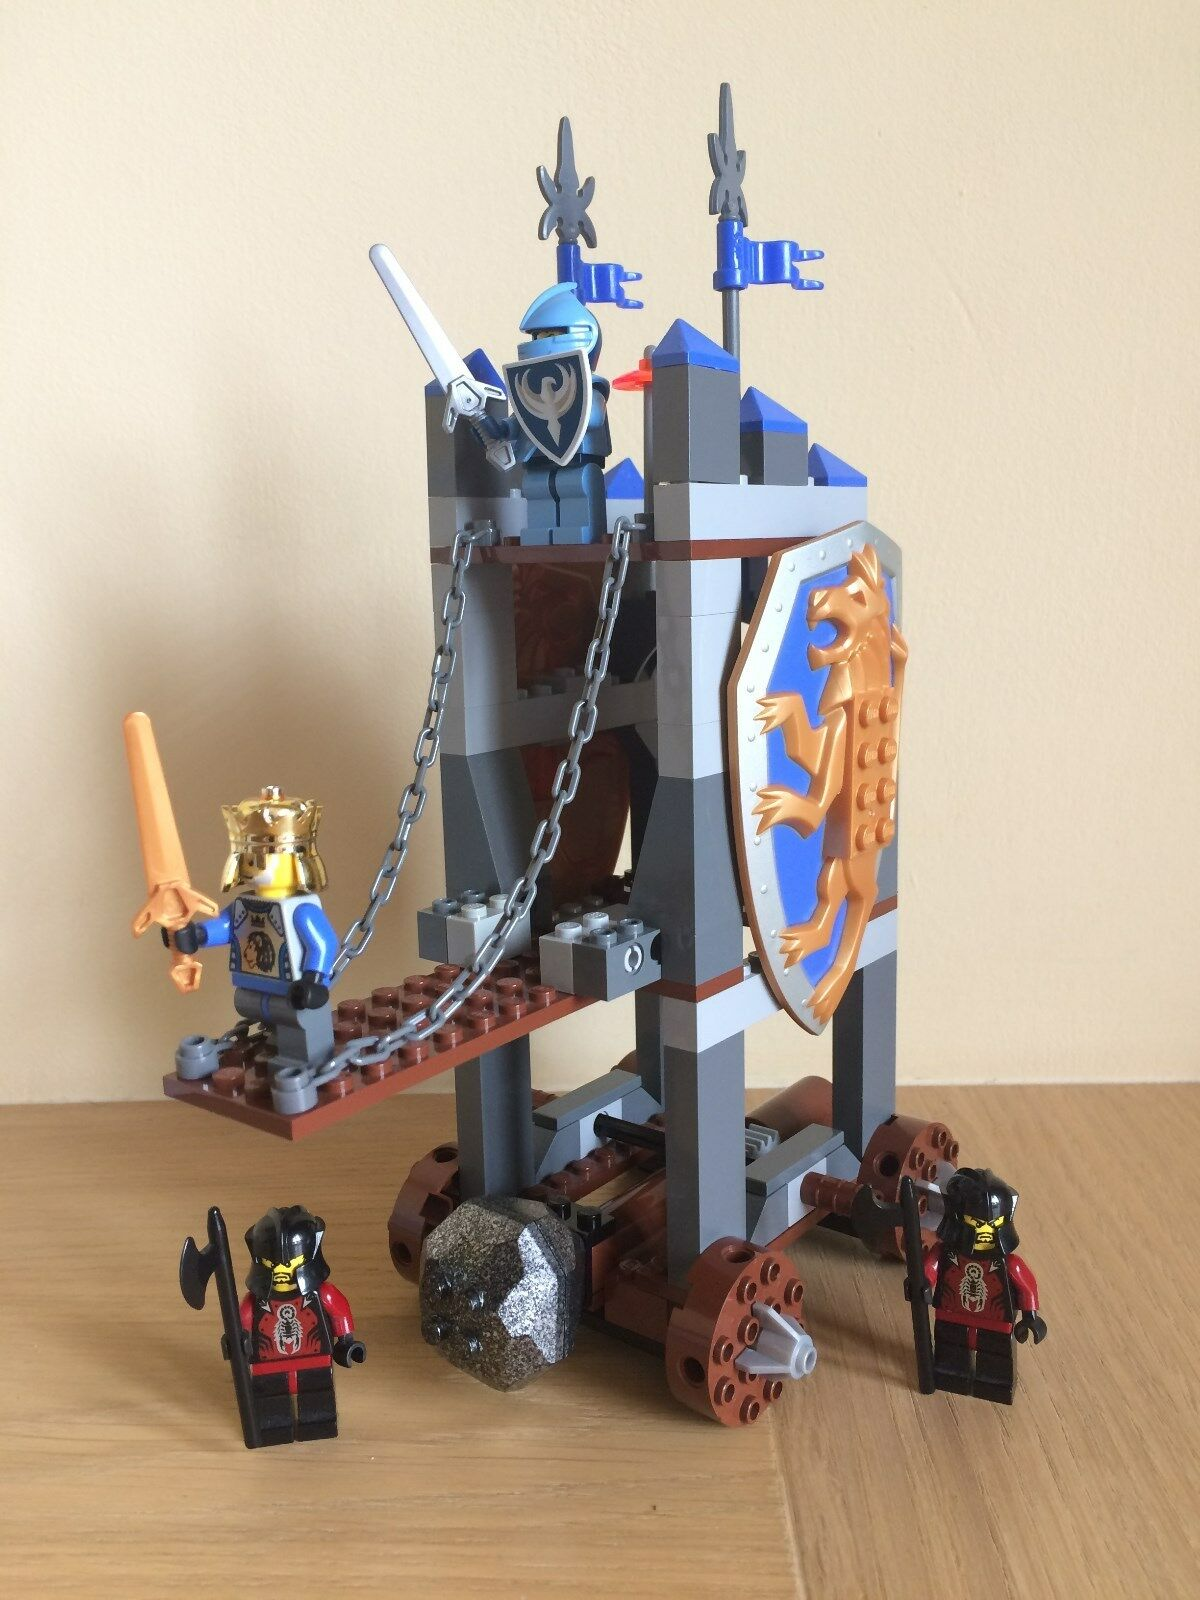 LEGO KING'S SIEGE TOWER () 100% COMPLETE WITH ORIGINAL BOX AND INSTRUCTIONS